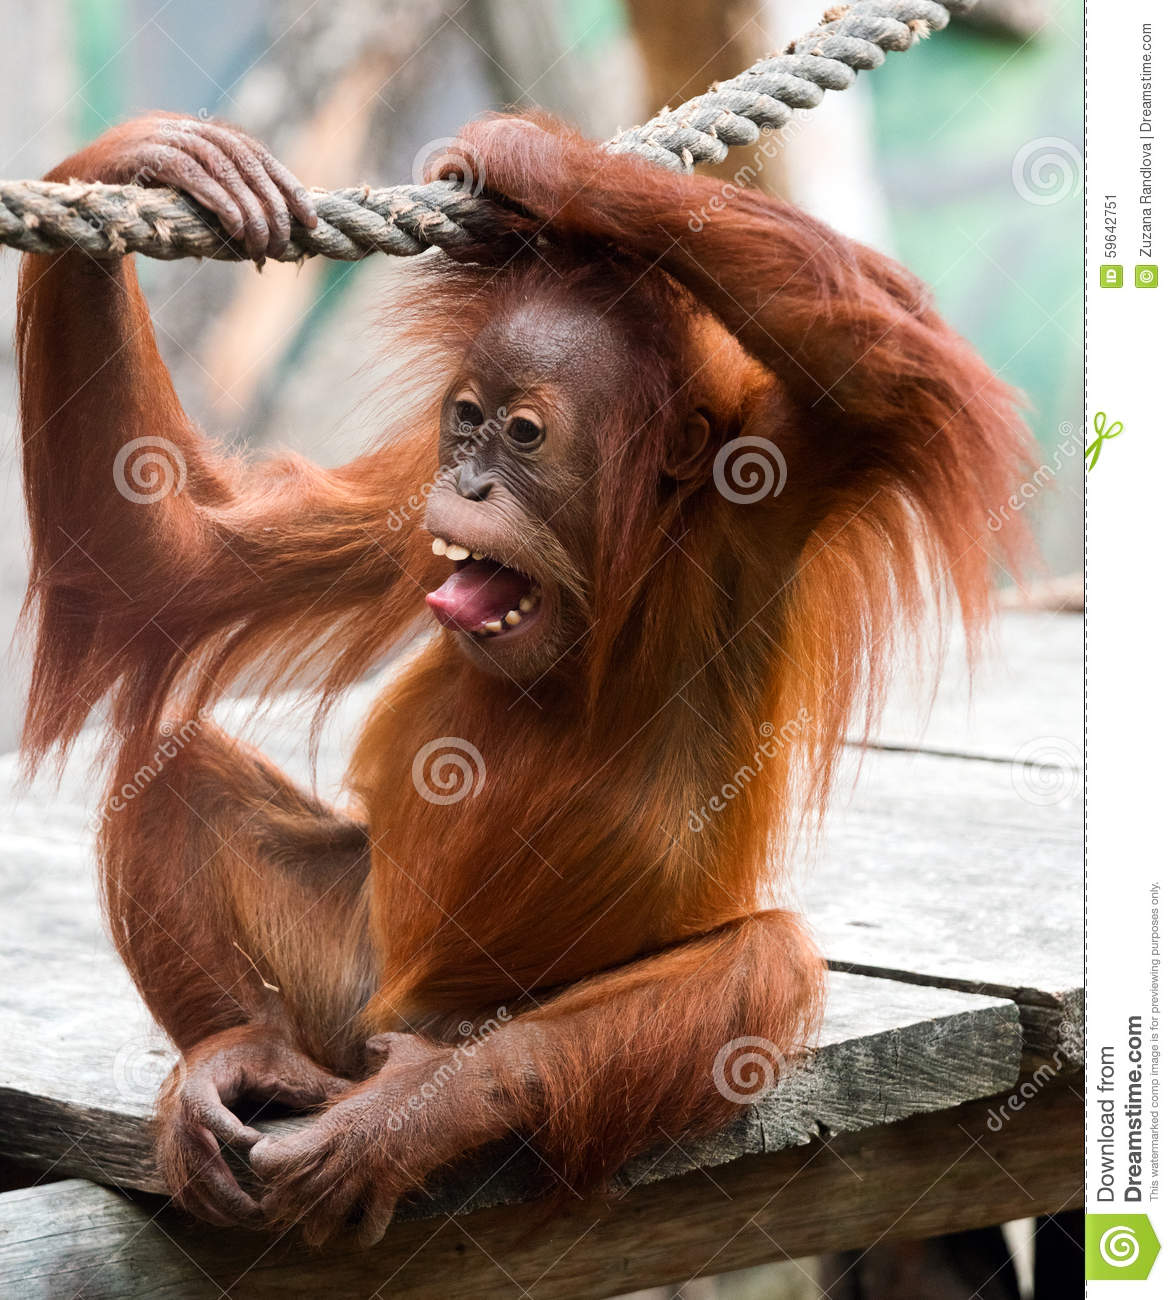 Sex orang utan sex girl